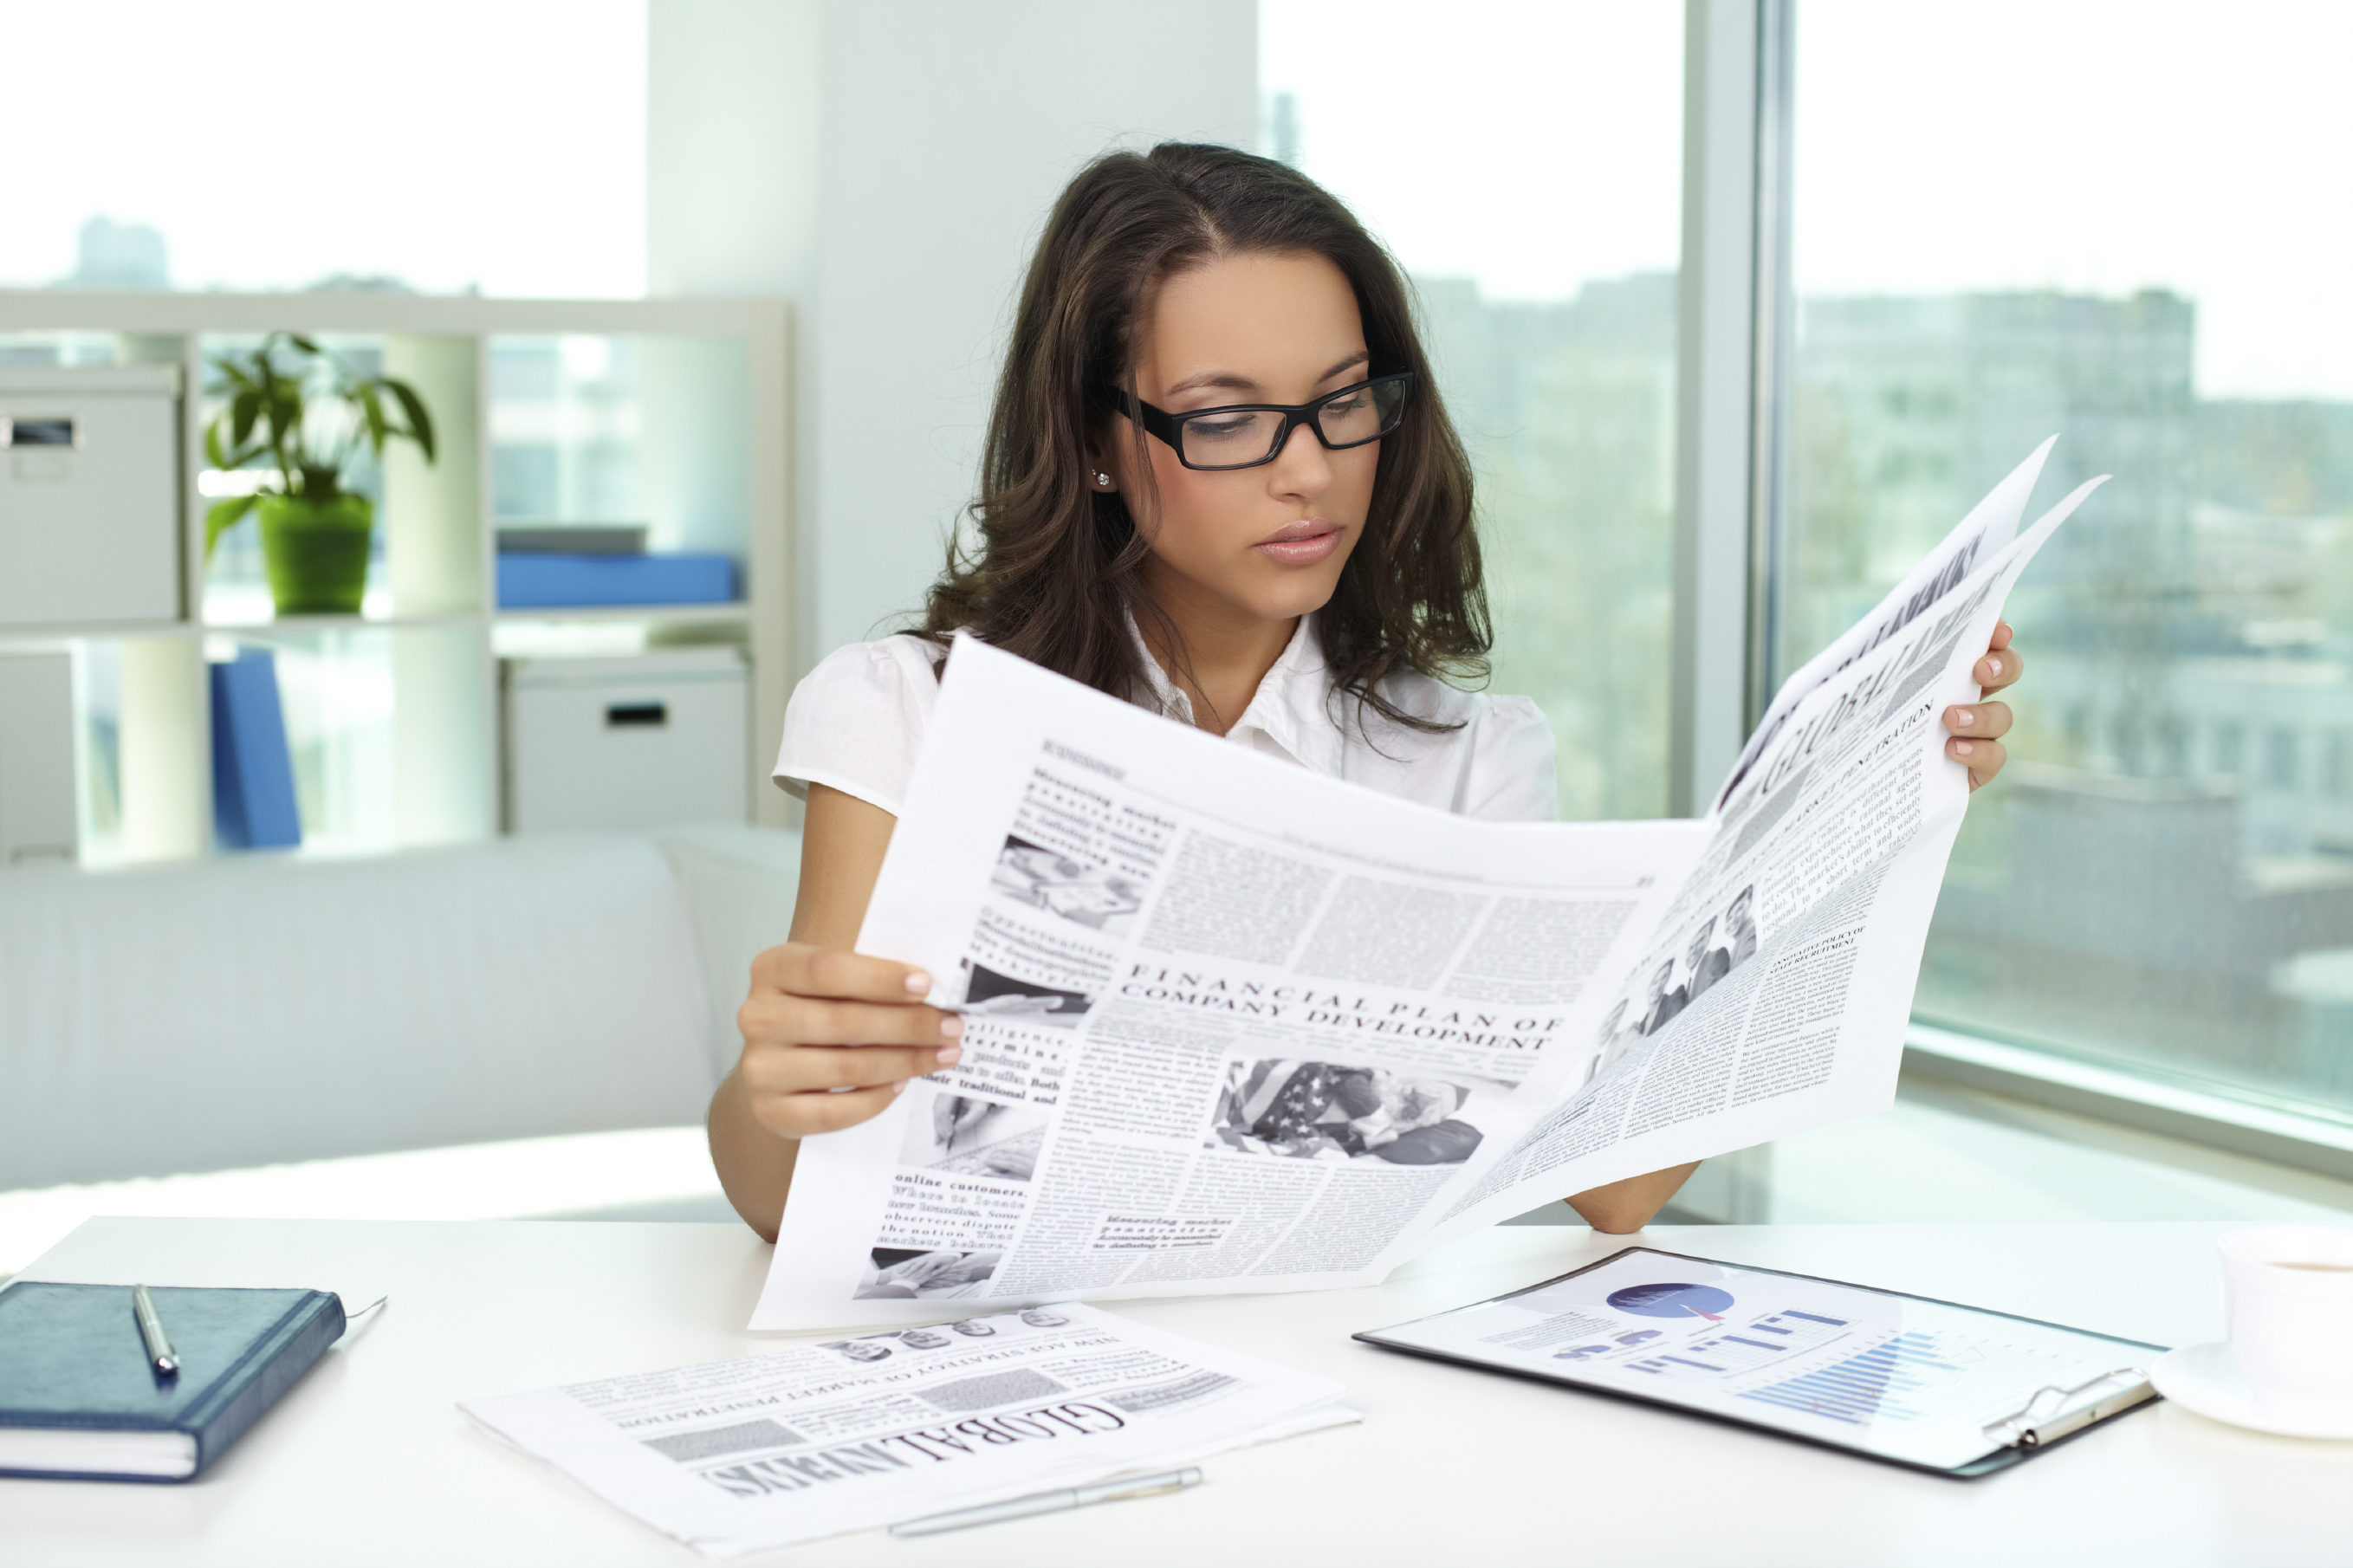 woman wearing glasses reading newspaper at her desk